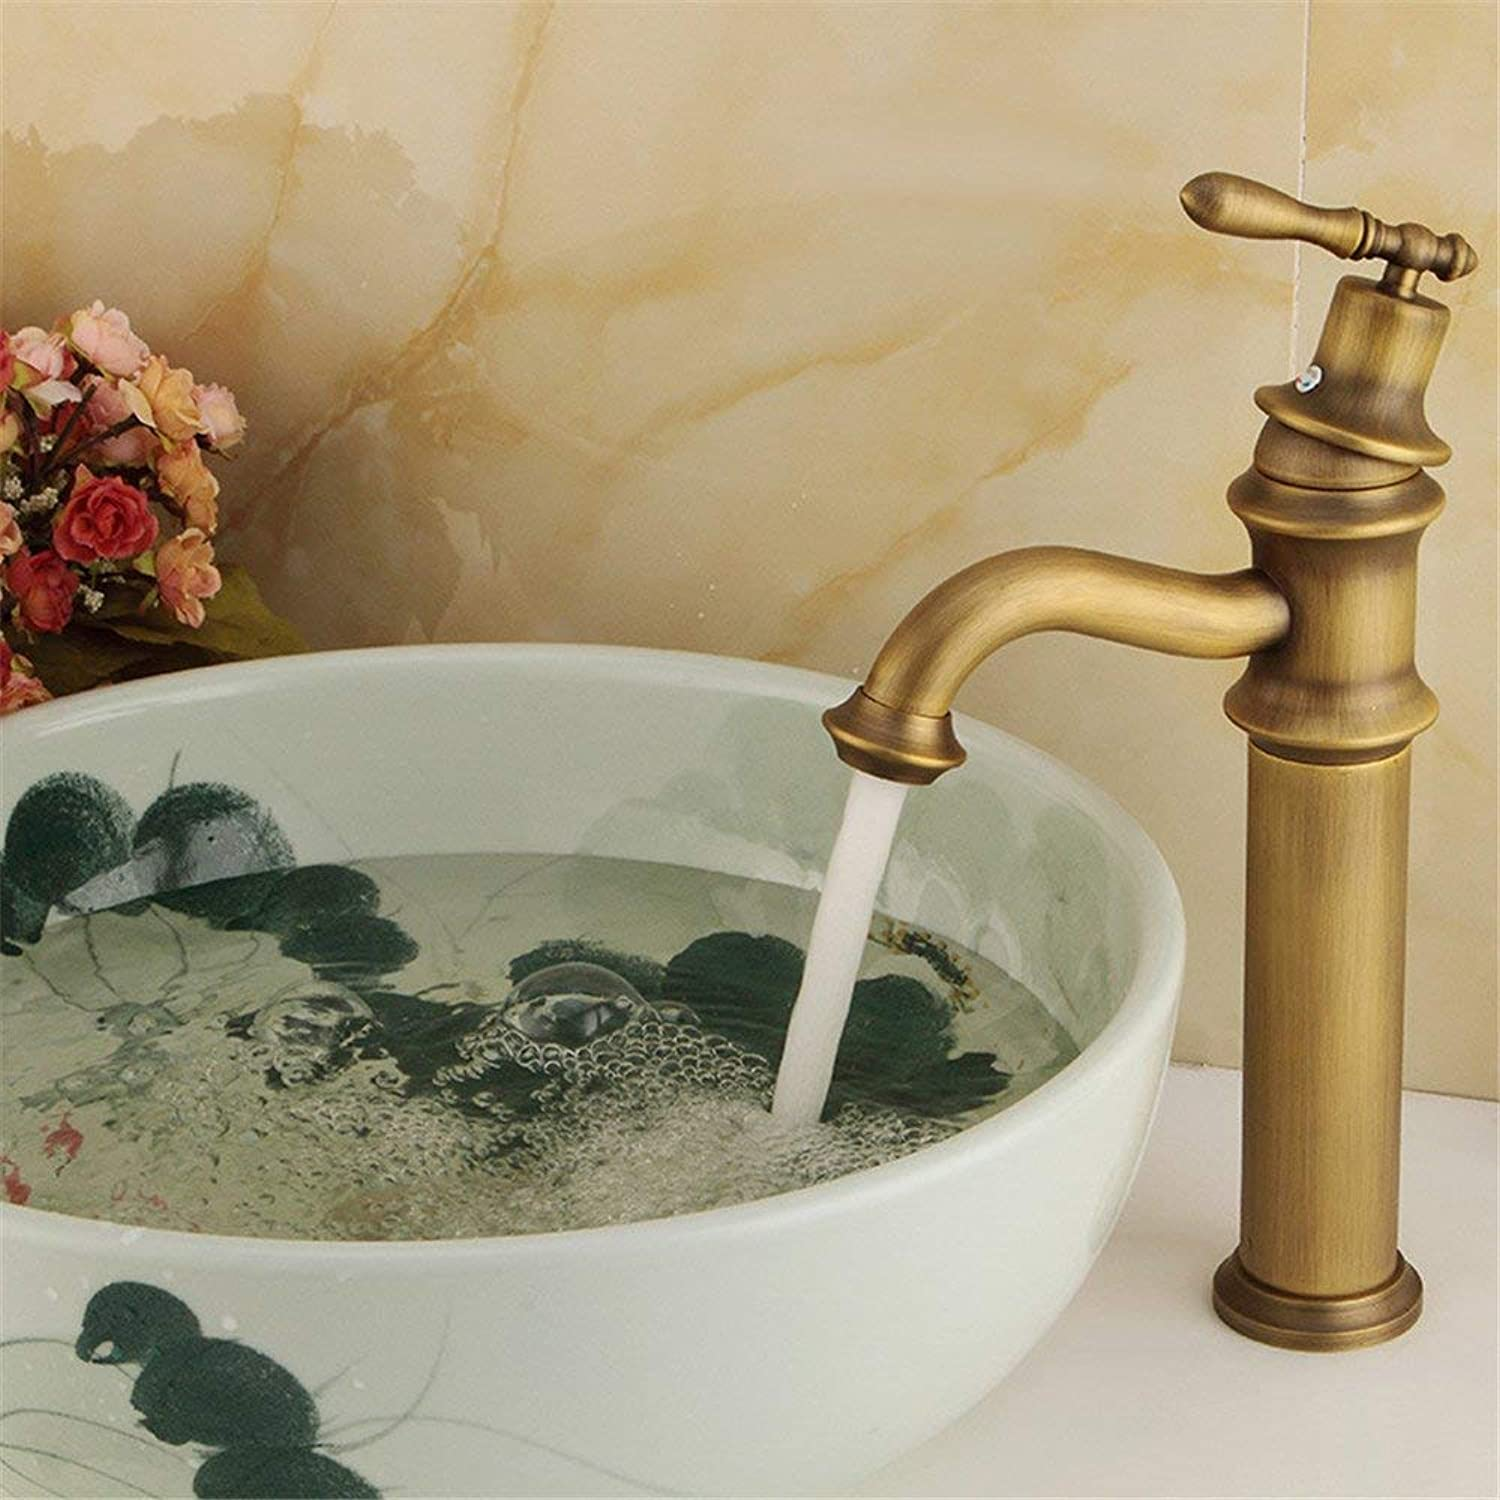 Oudan Taps Faucet Bathroom Faucet Bamboo Full Copper Retro Mixed Retro Basin Kitchen Above Counter Basin (color   -, Size   -)